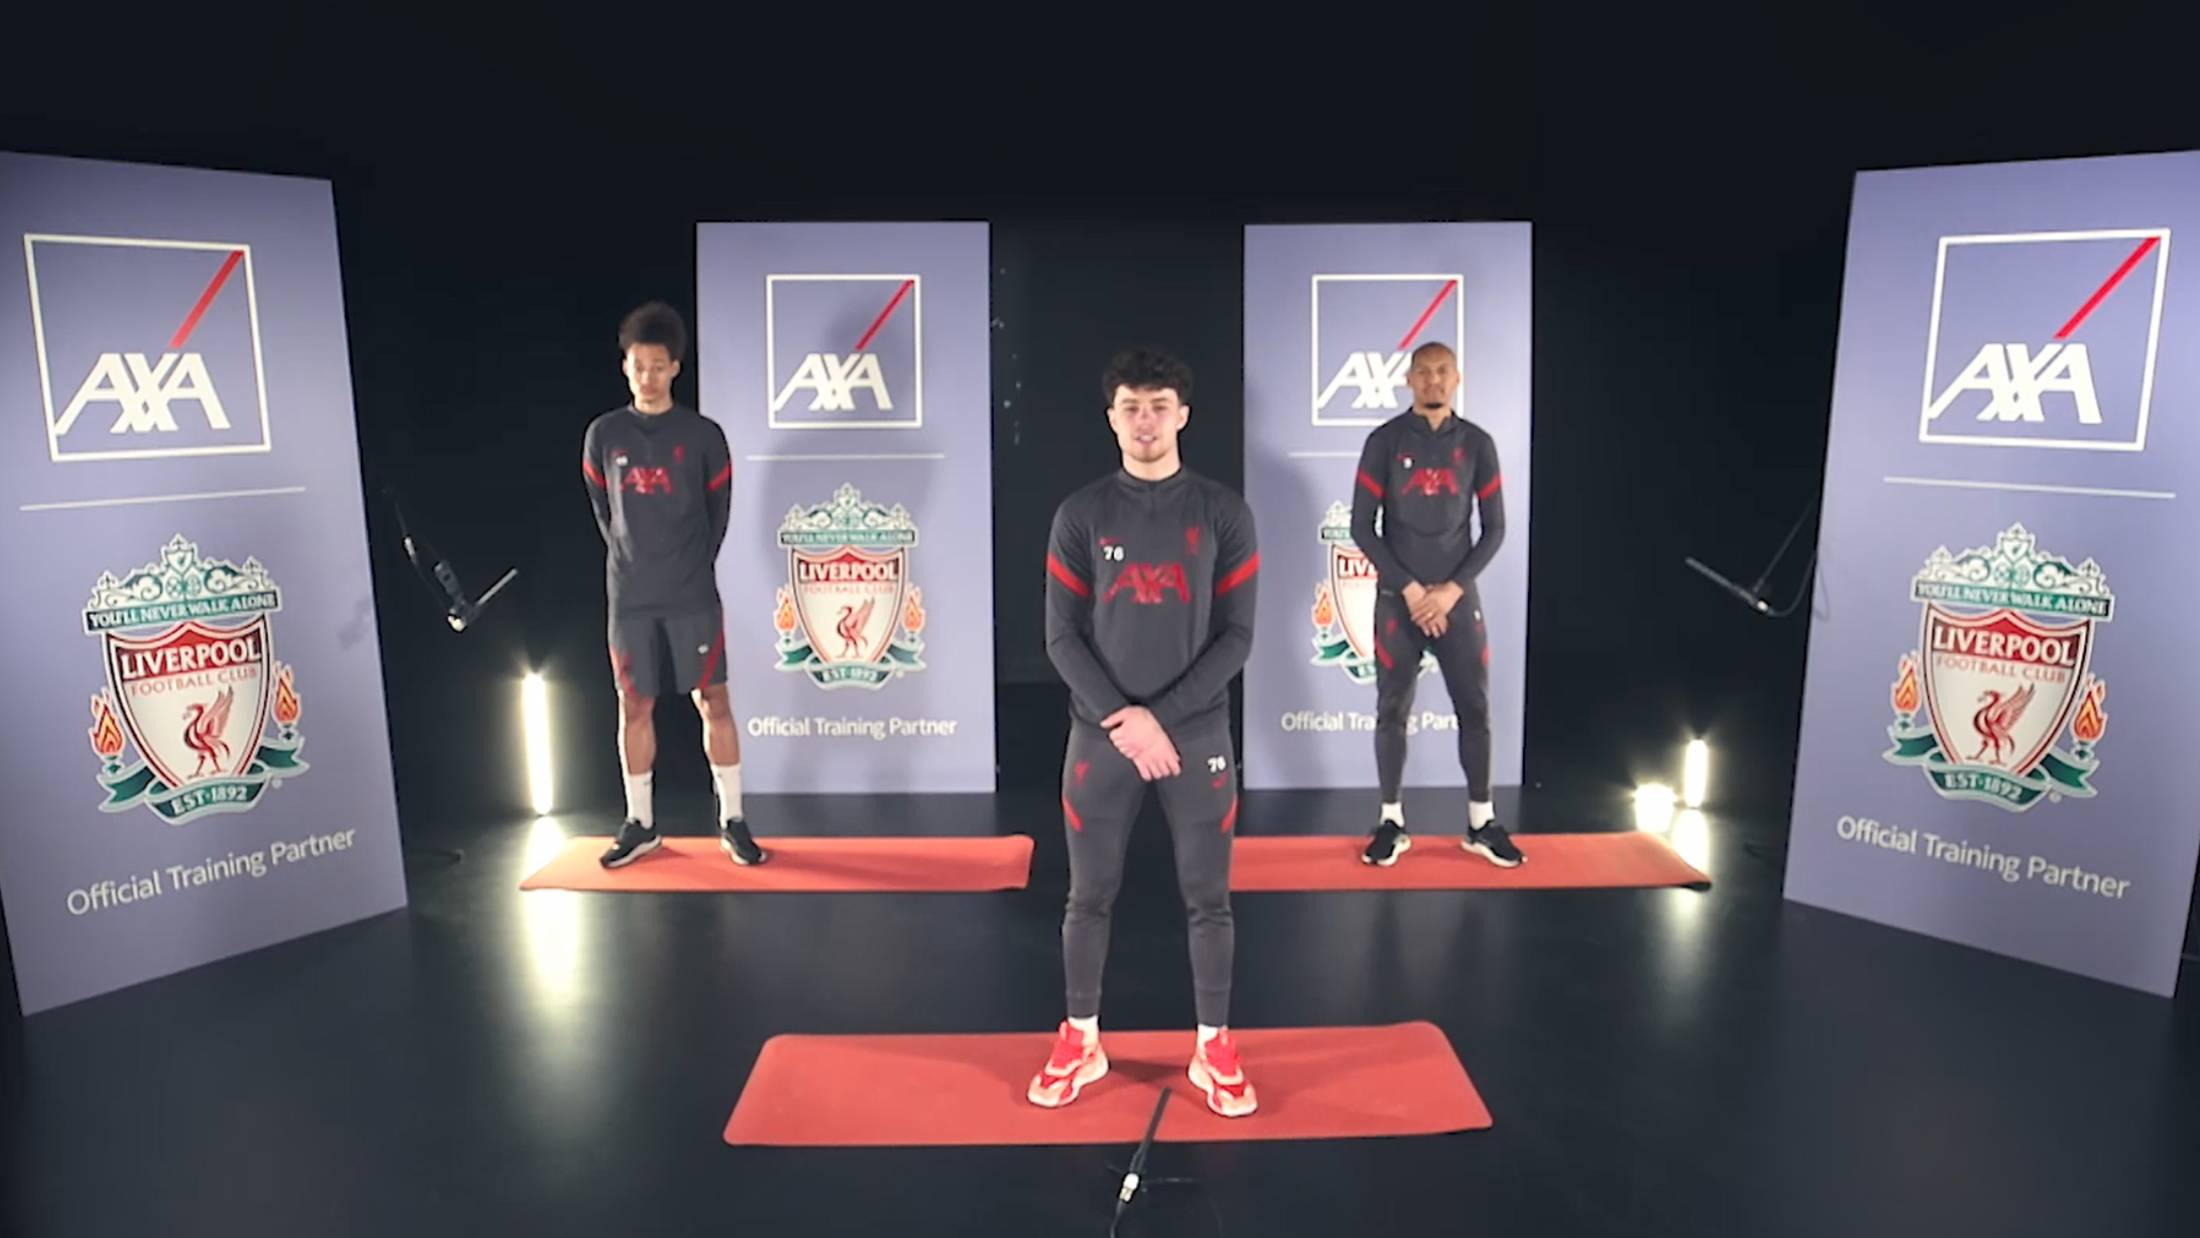 Players from Liverpool Football Club lead the LFC Challenge from studio with yoga mats on floor